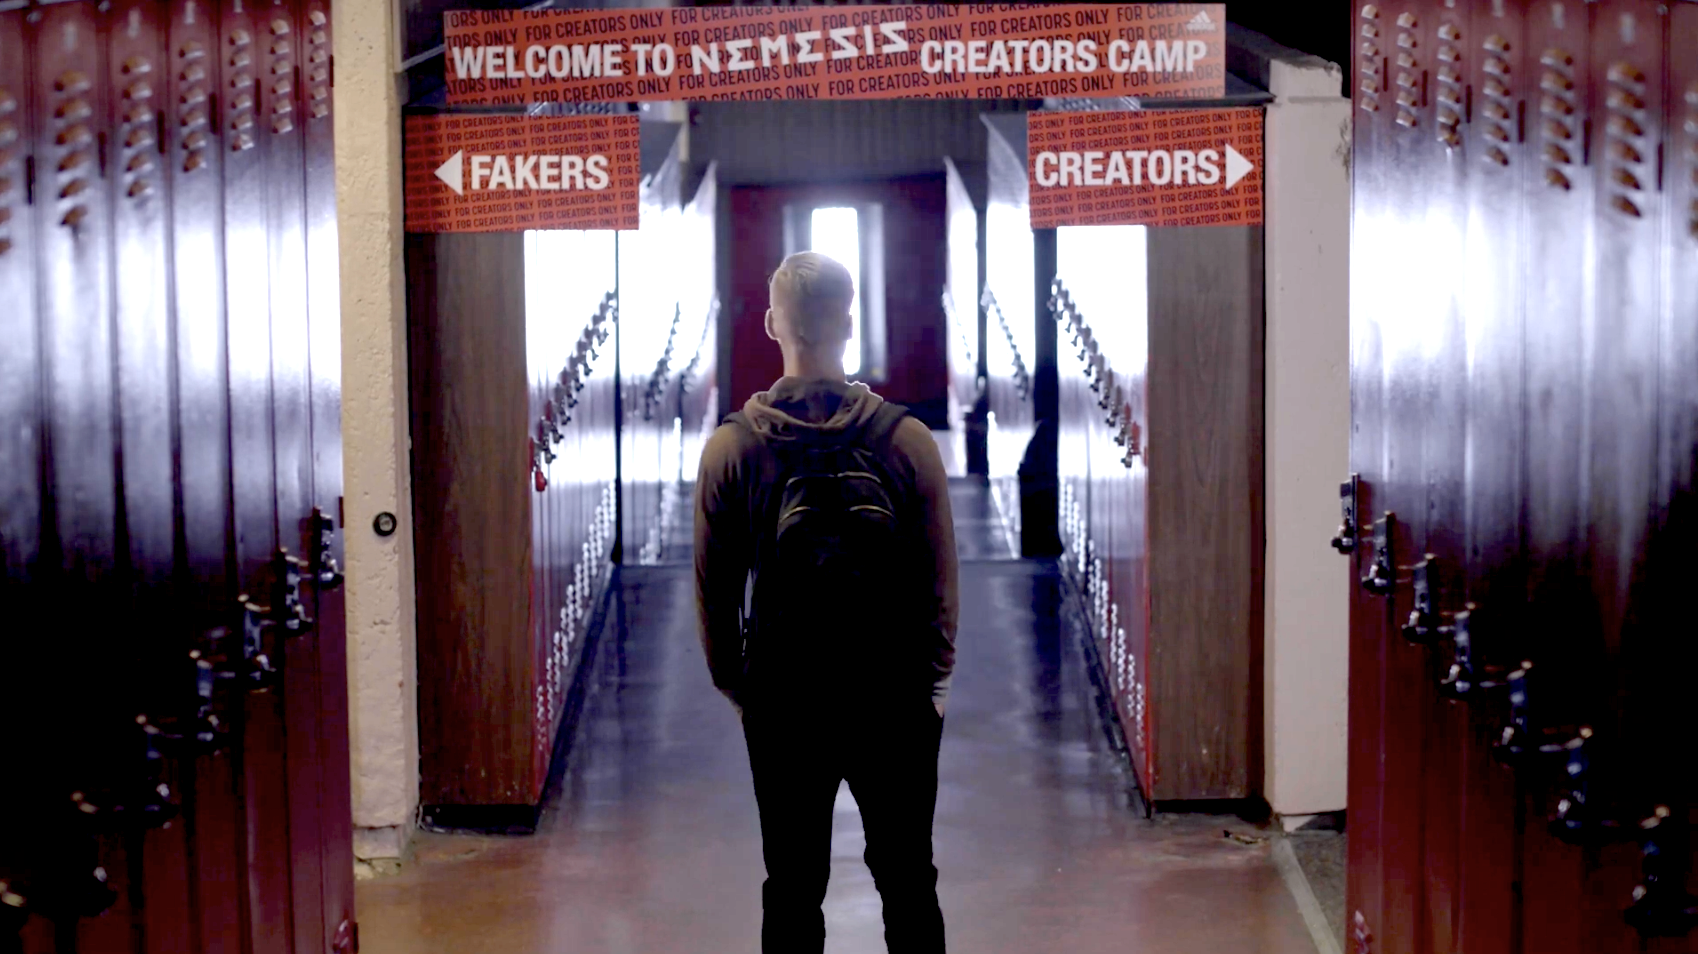 Adidas Launches Creators Camp to Combat Chronic Fakers Disorder